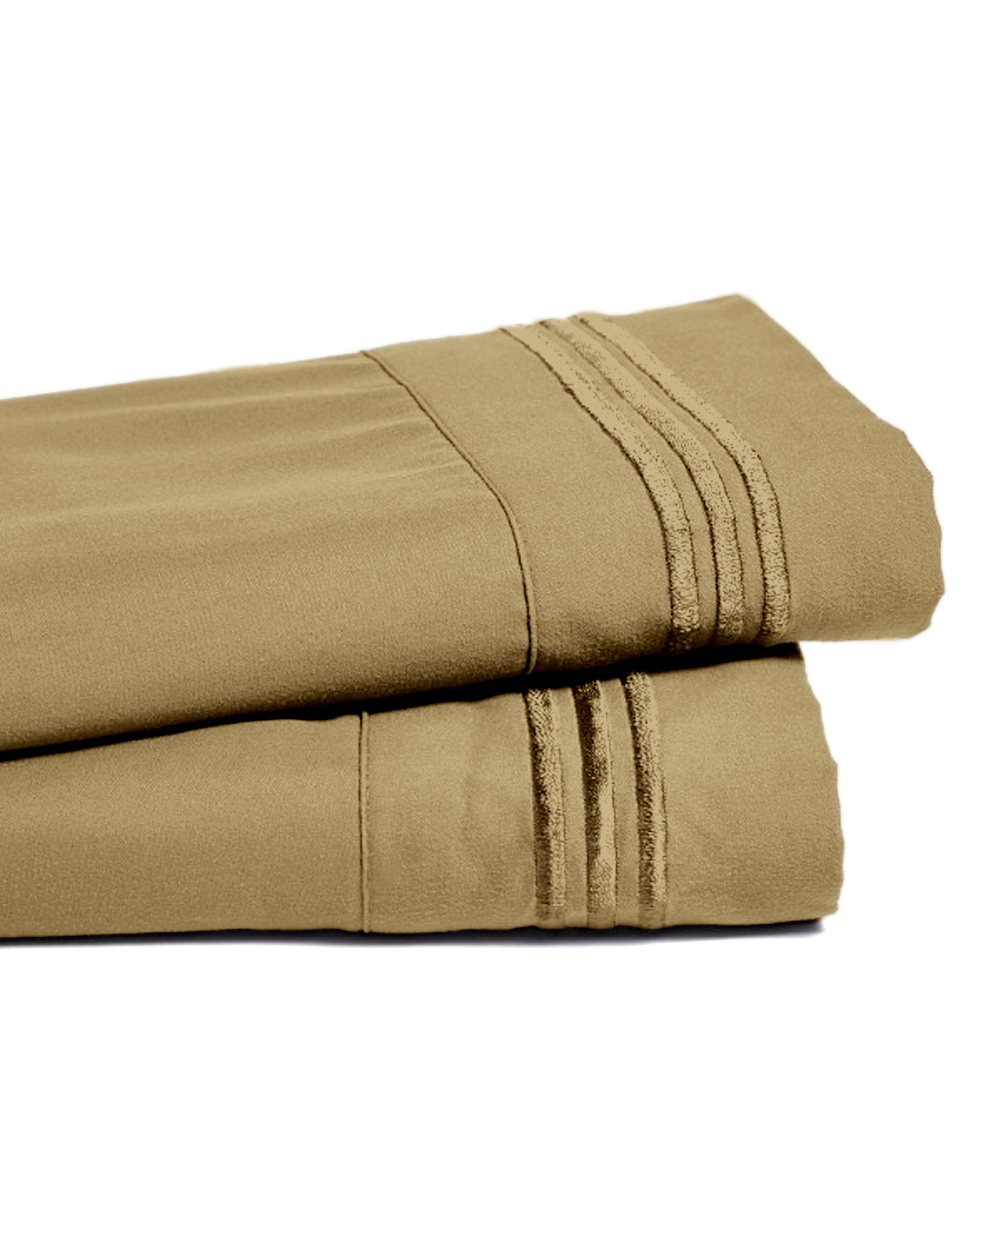 Deep Pocket Bamboo Bed Sheet - Luxury 2200 Embroidered Wrinkle, Fade and Stain Resistant Sheets - Khaki Queen Size